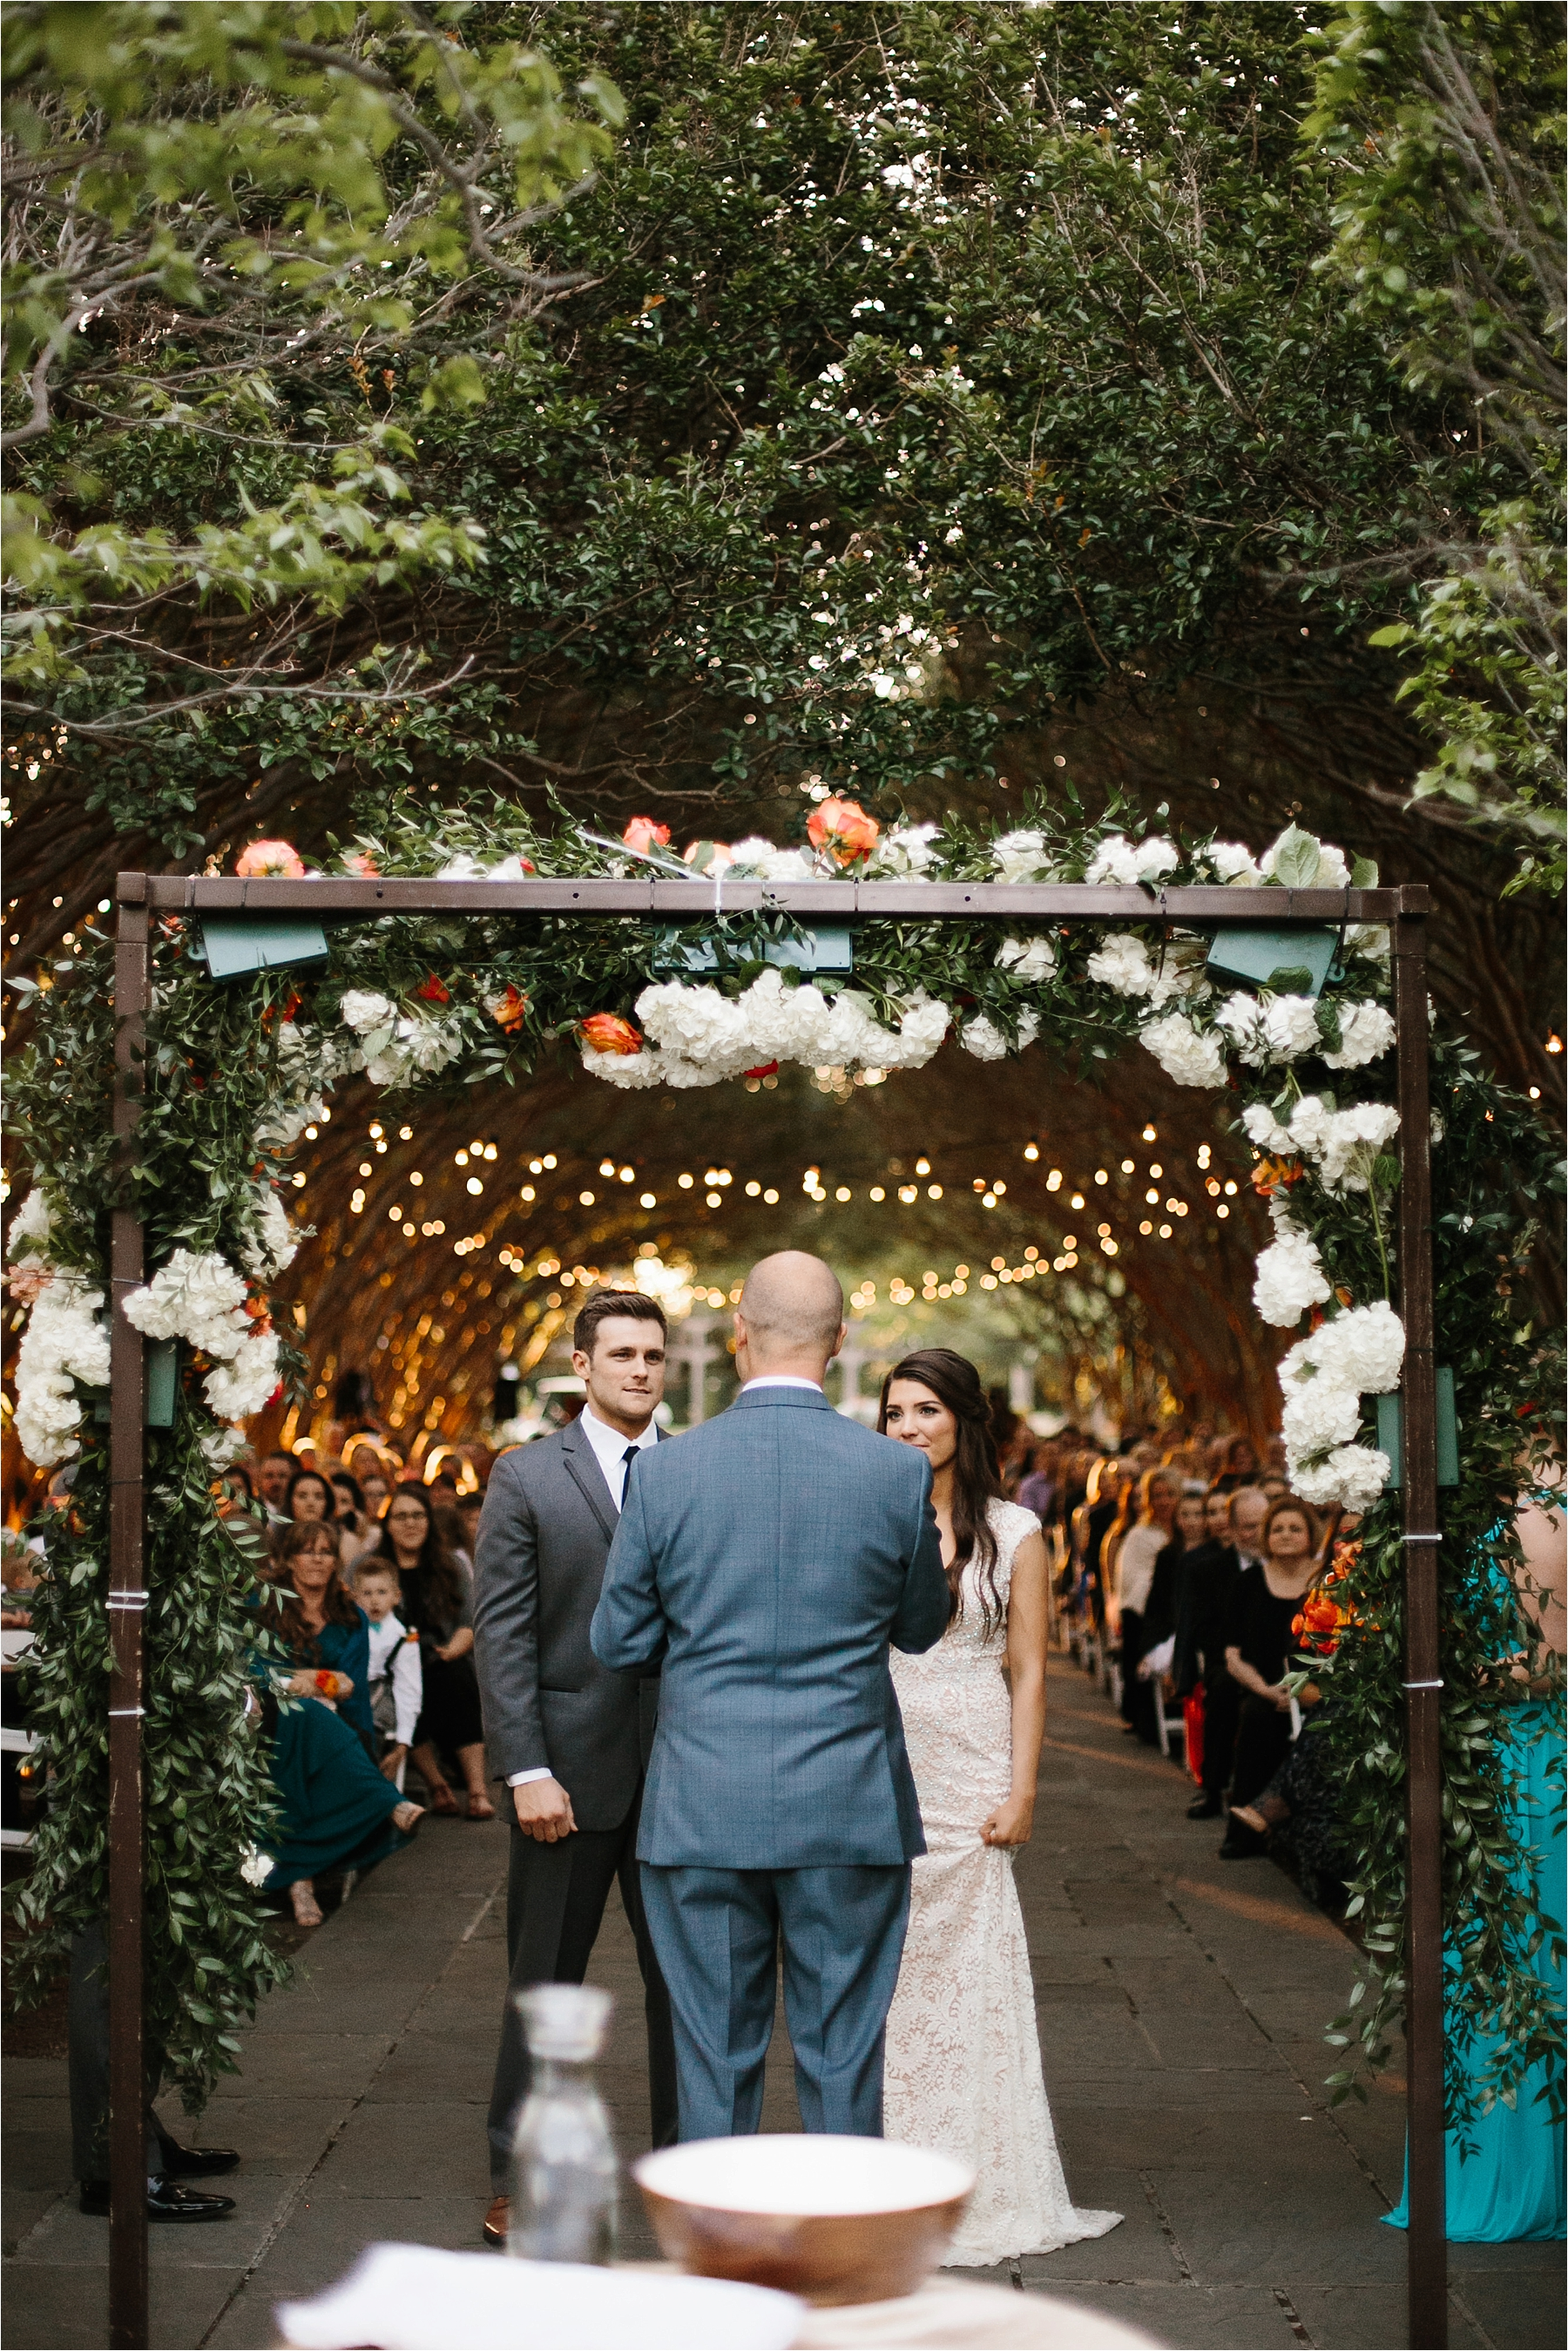 Devyn + Caden __ a Dallas Arboretum Garden Style Wedding by North Texas Wedding Photographer Rachel Meagan Photography __ 092